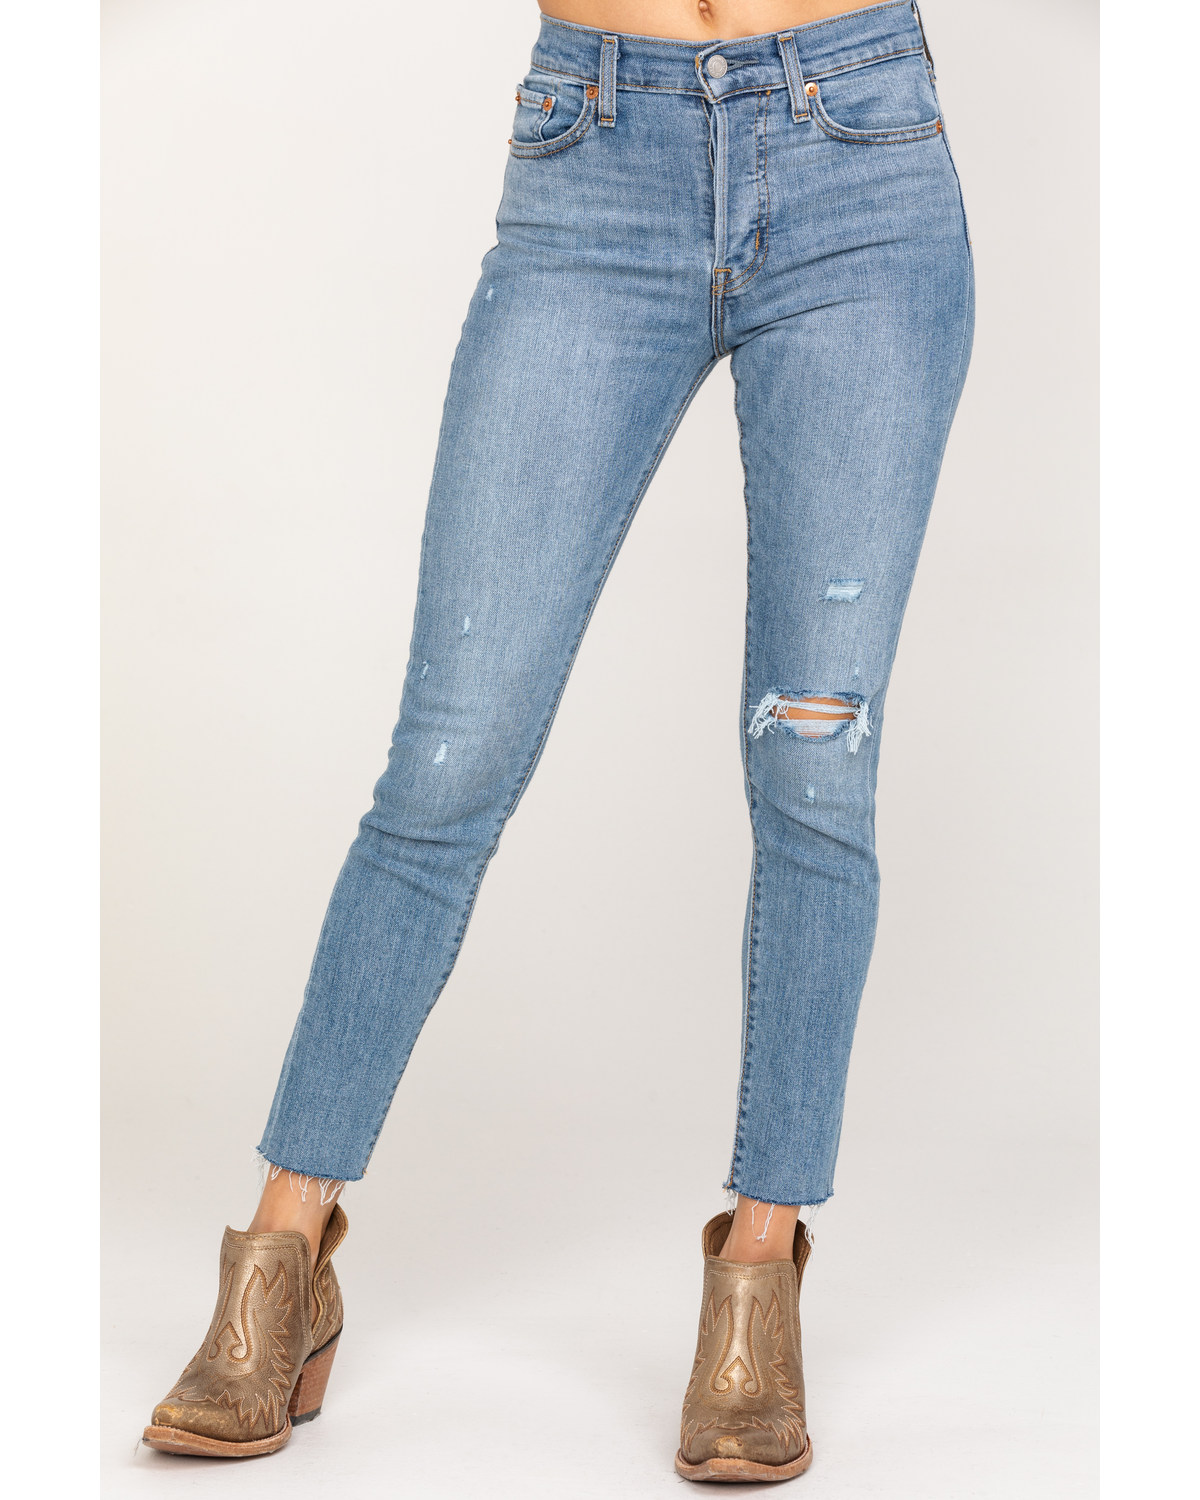 Levi's Wedgie Fit Skinny Jeans